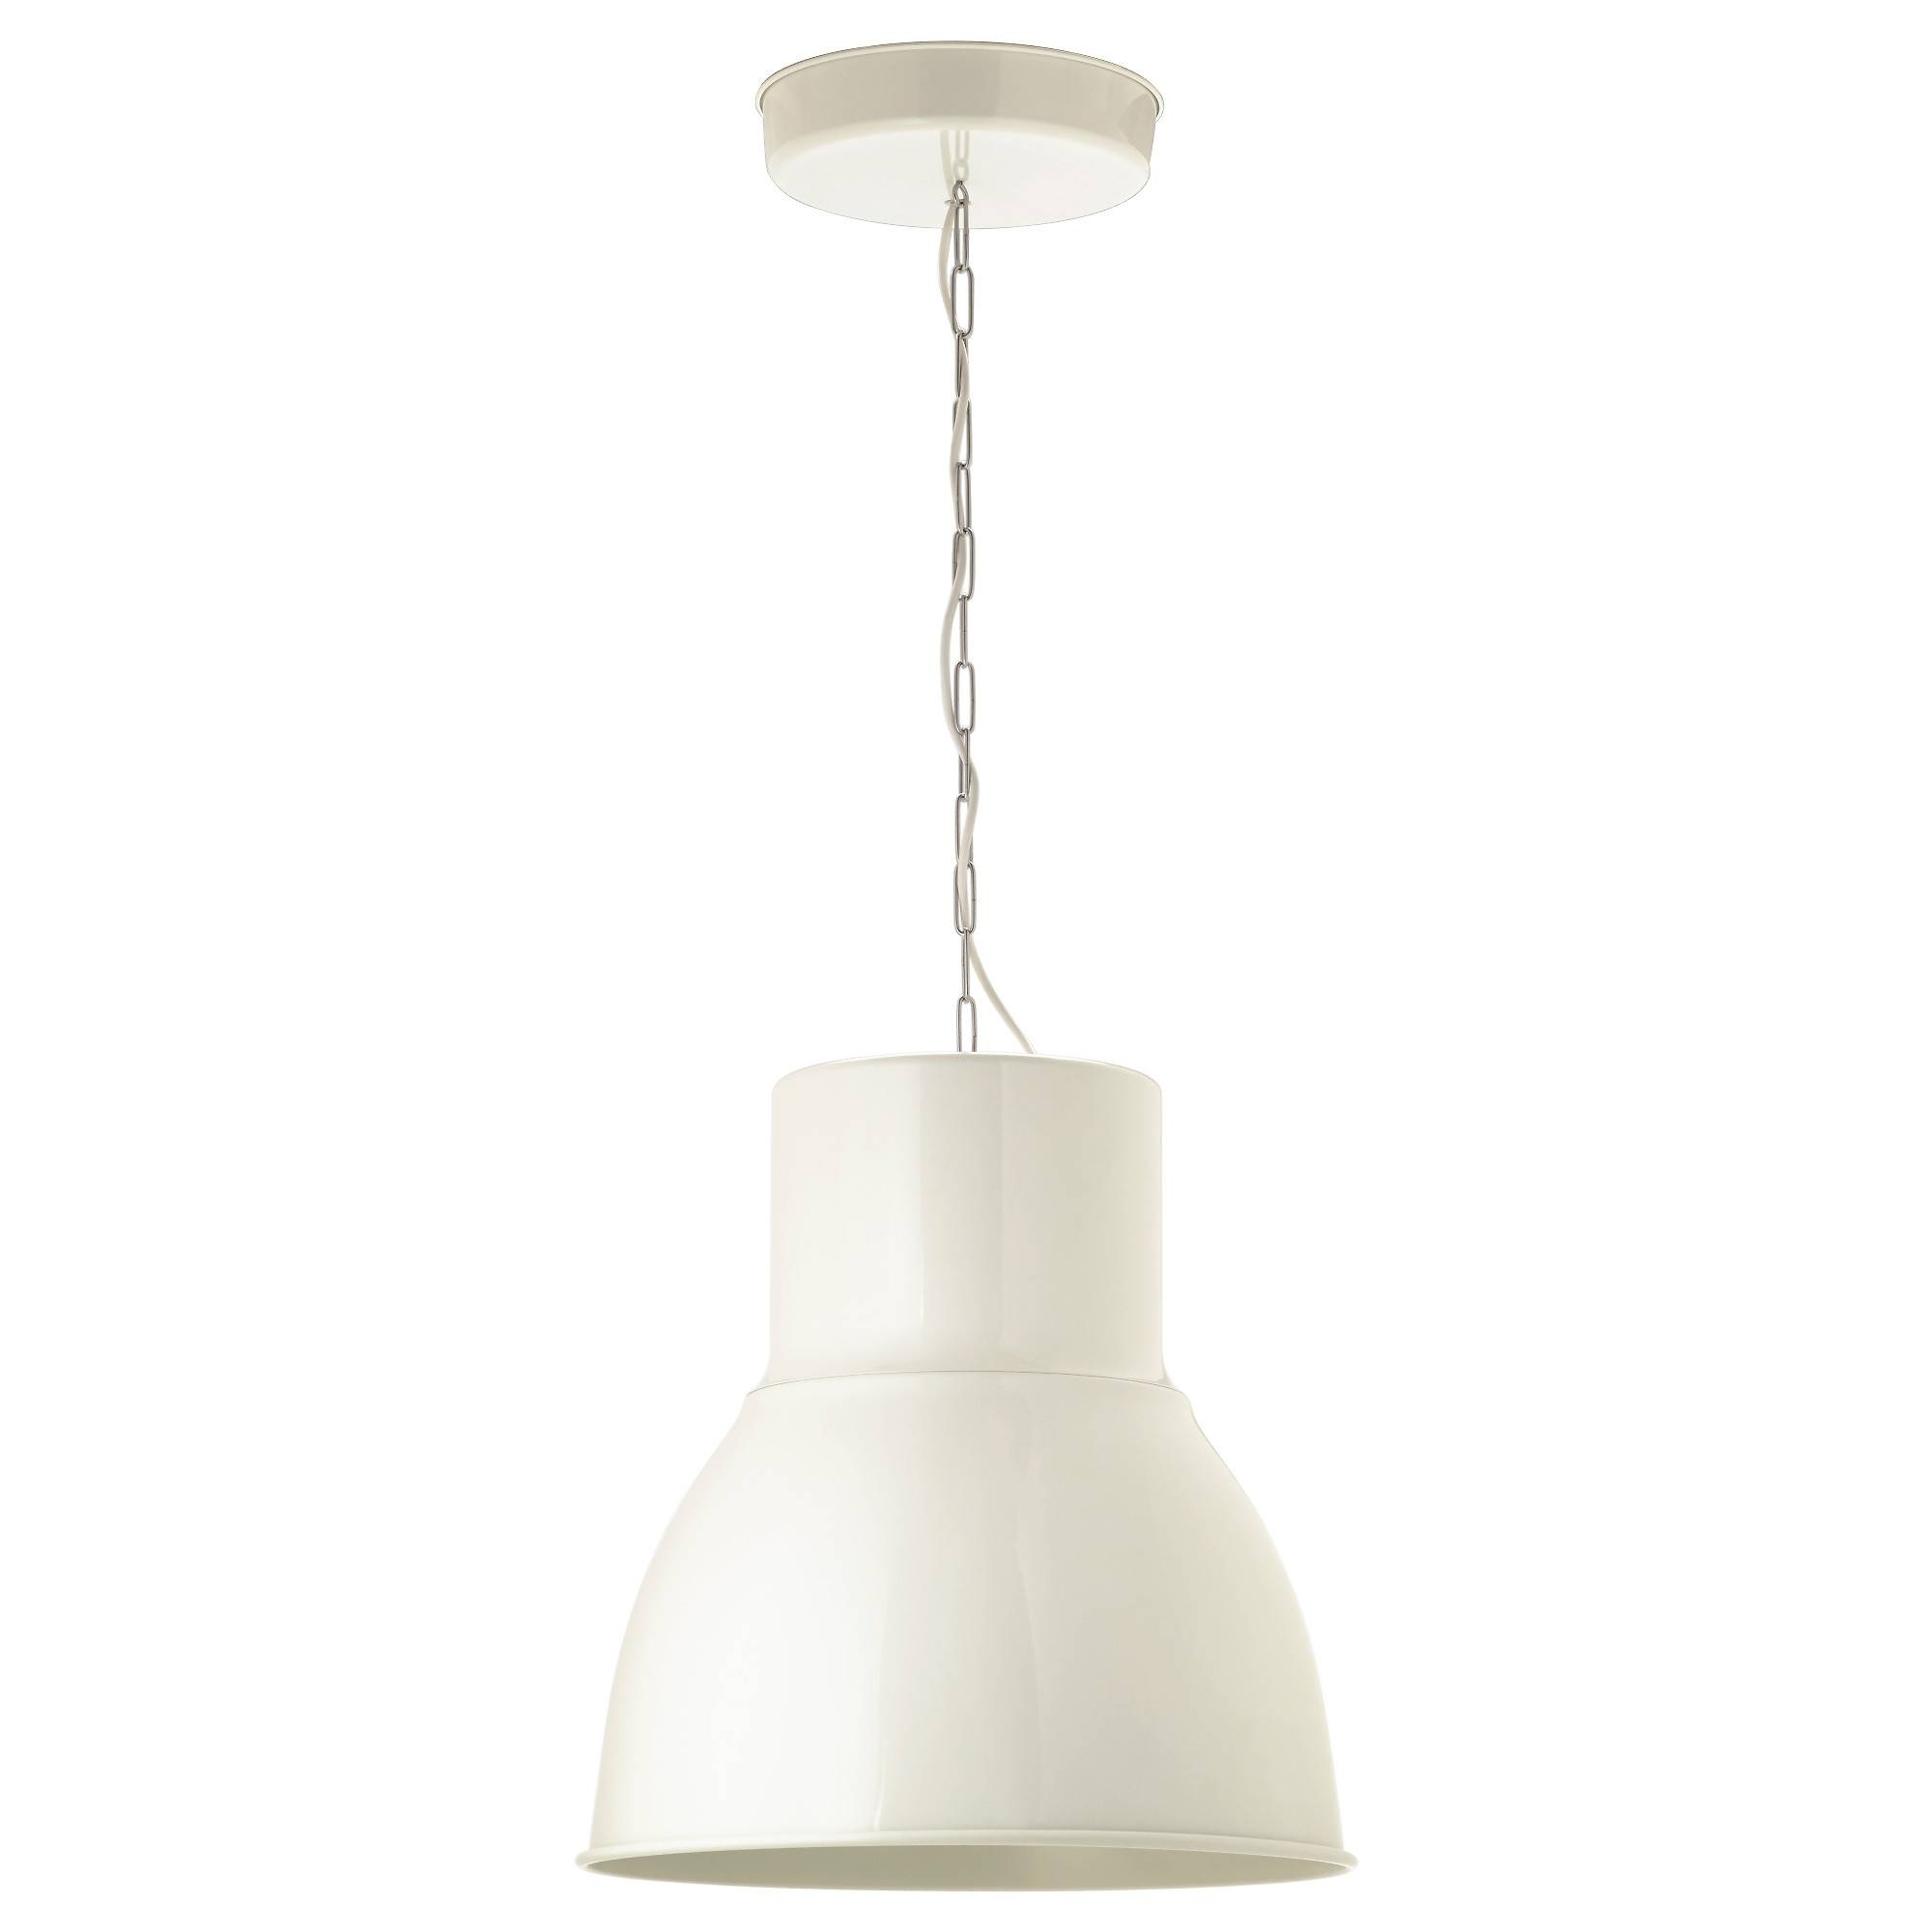 Pendant Lights & Lamp Shades - Ikea intended for Ikea Pendent Lights (Image 13 of 15)